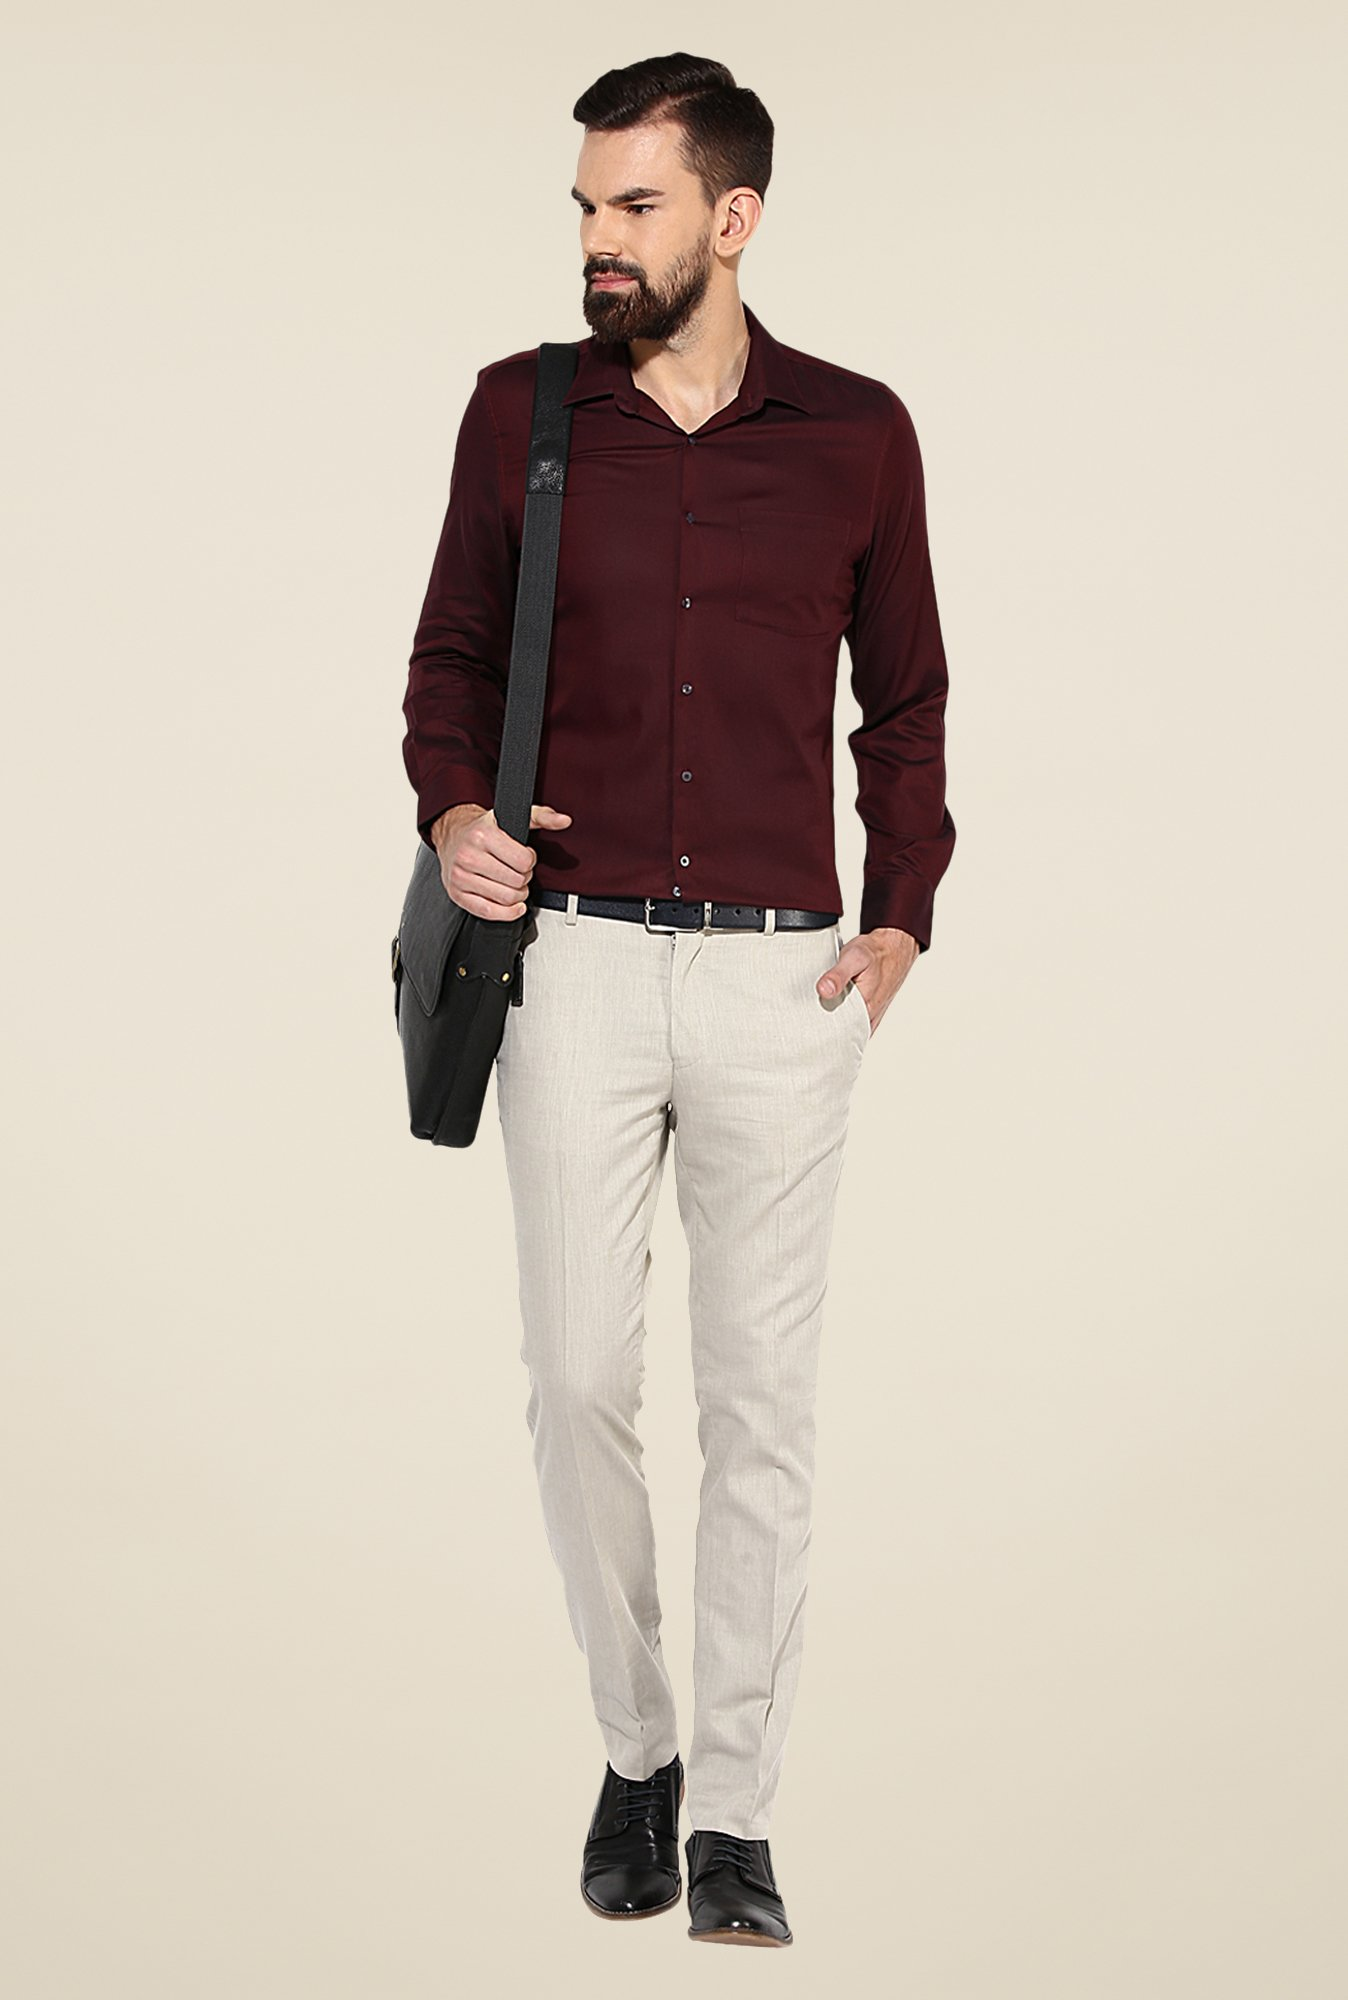 Turtle Maroon Solid Cotton Shirt